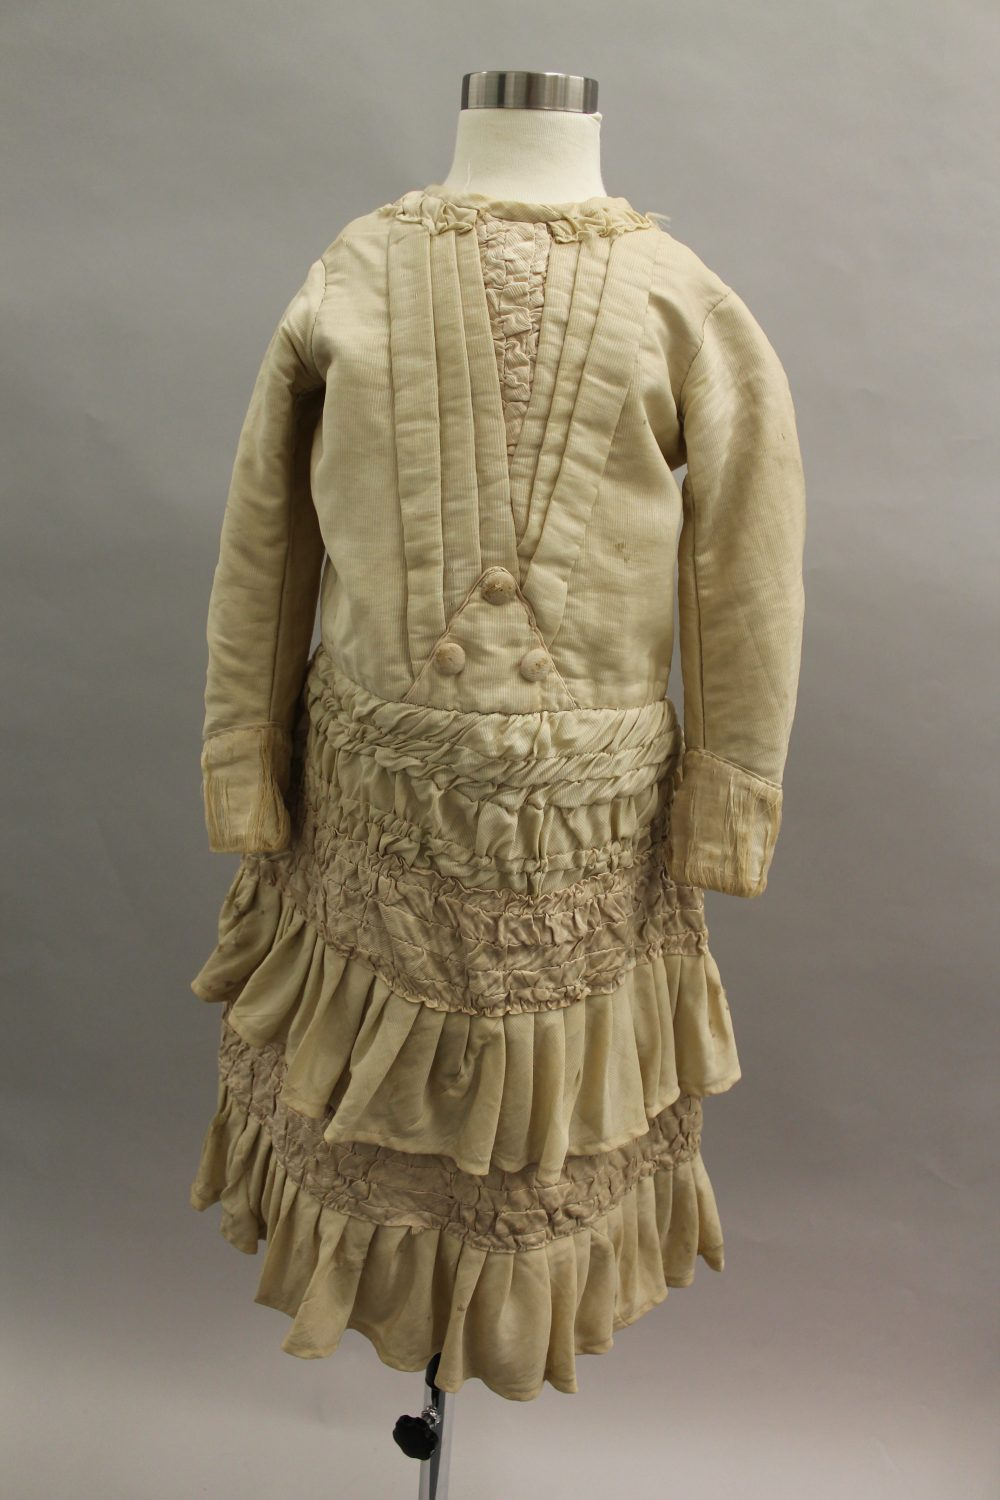 Girls cream coloured dress. The bodice has sewn detail going down the front into a point and the skirt features flounces. The back features a small bustle mimicking the fashionable style of women at the time, 1880s.